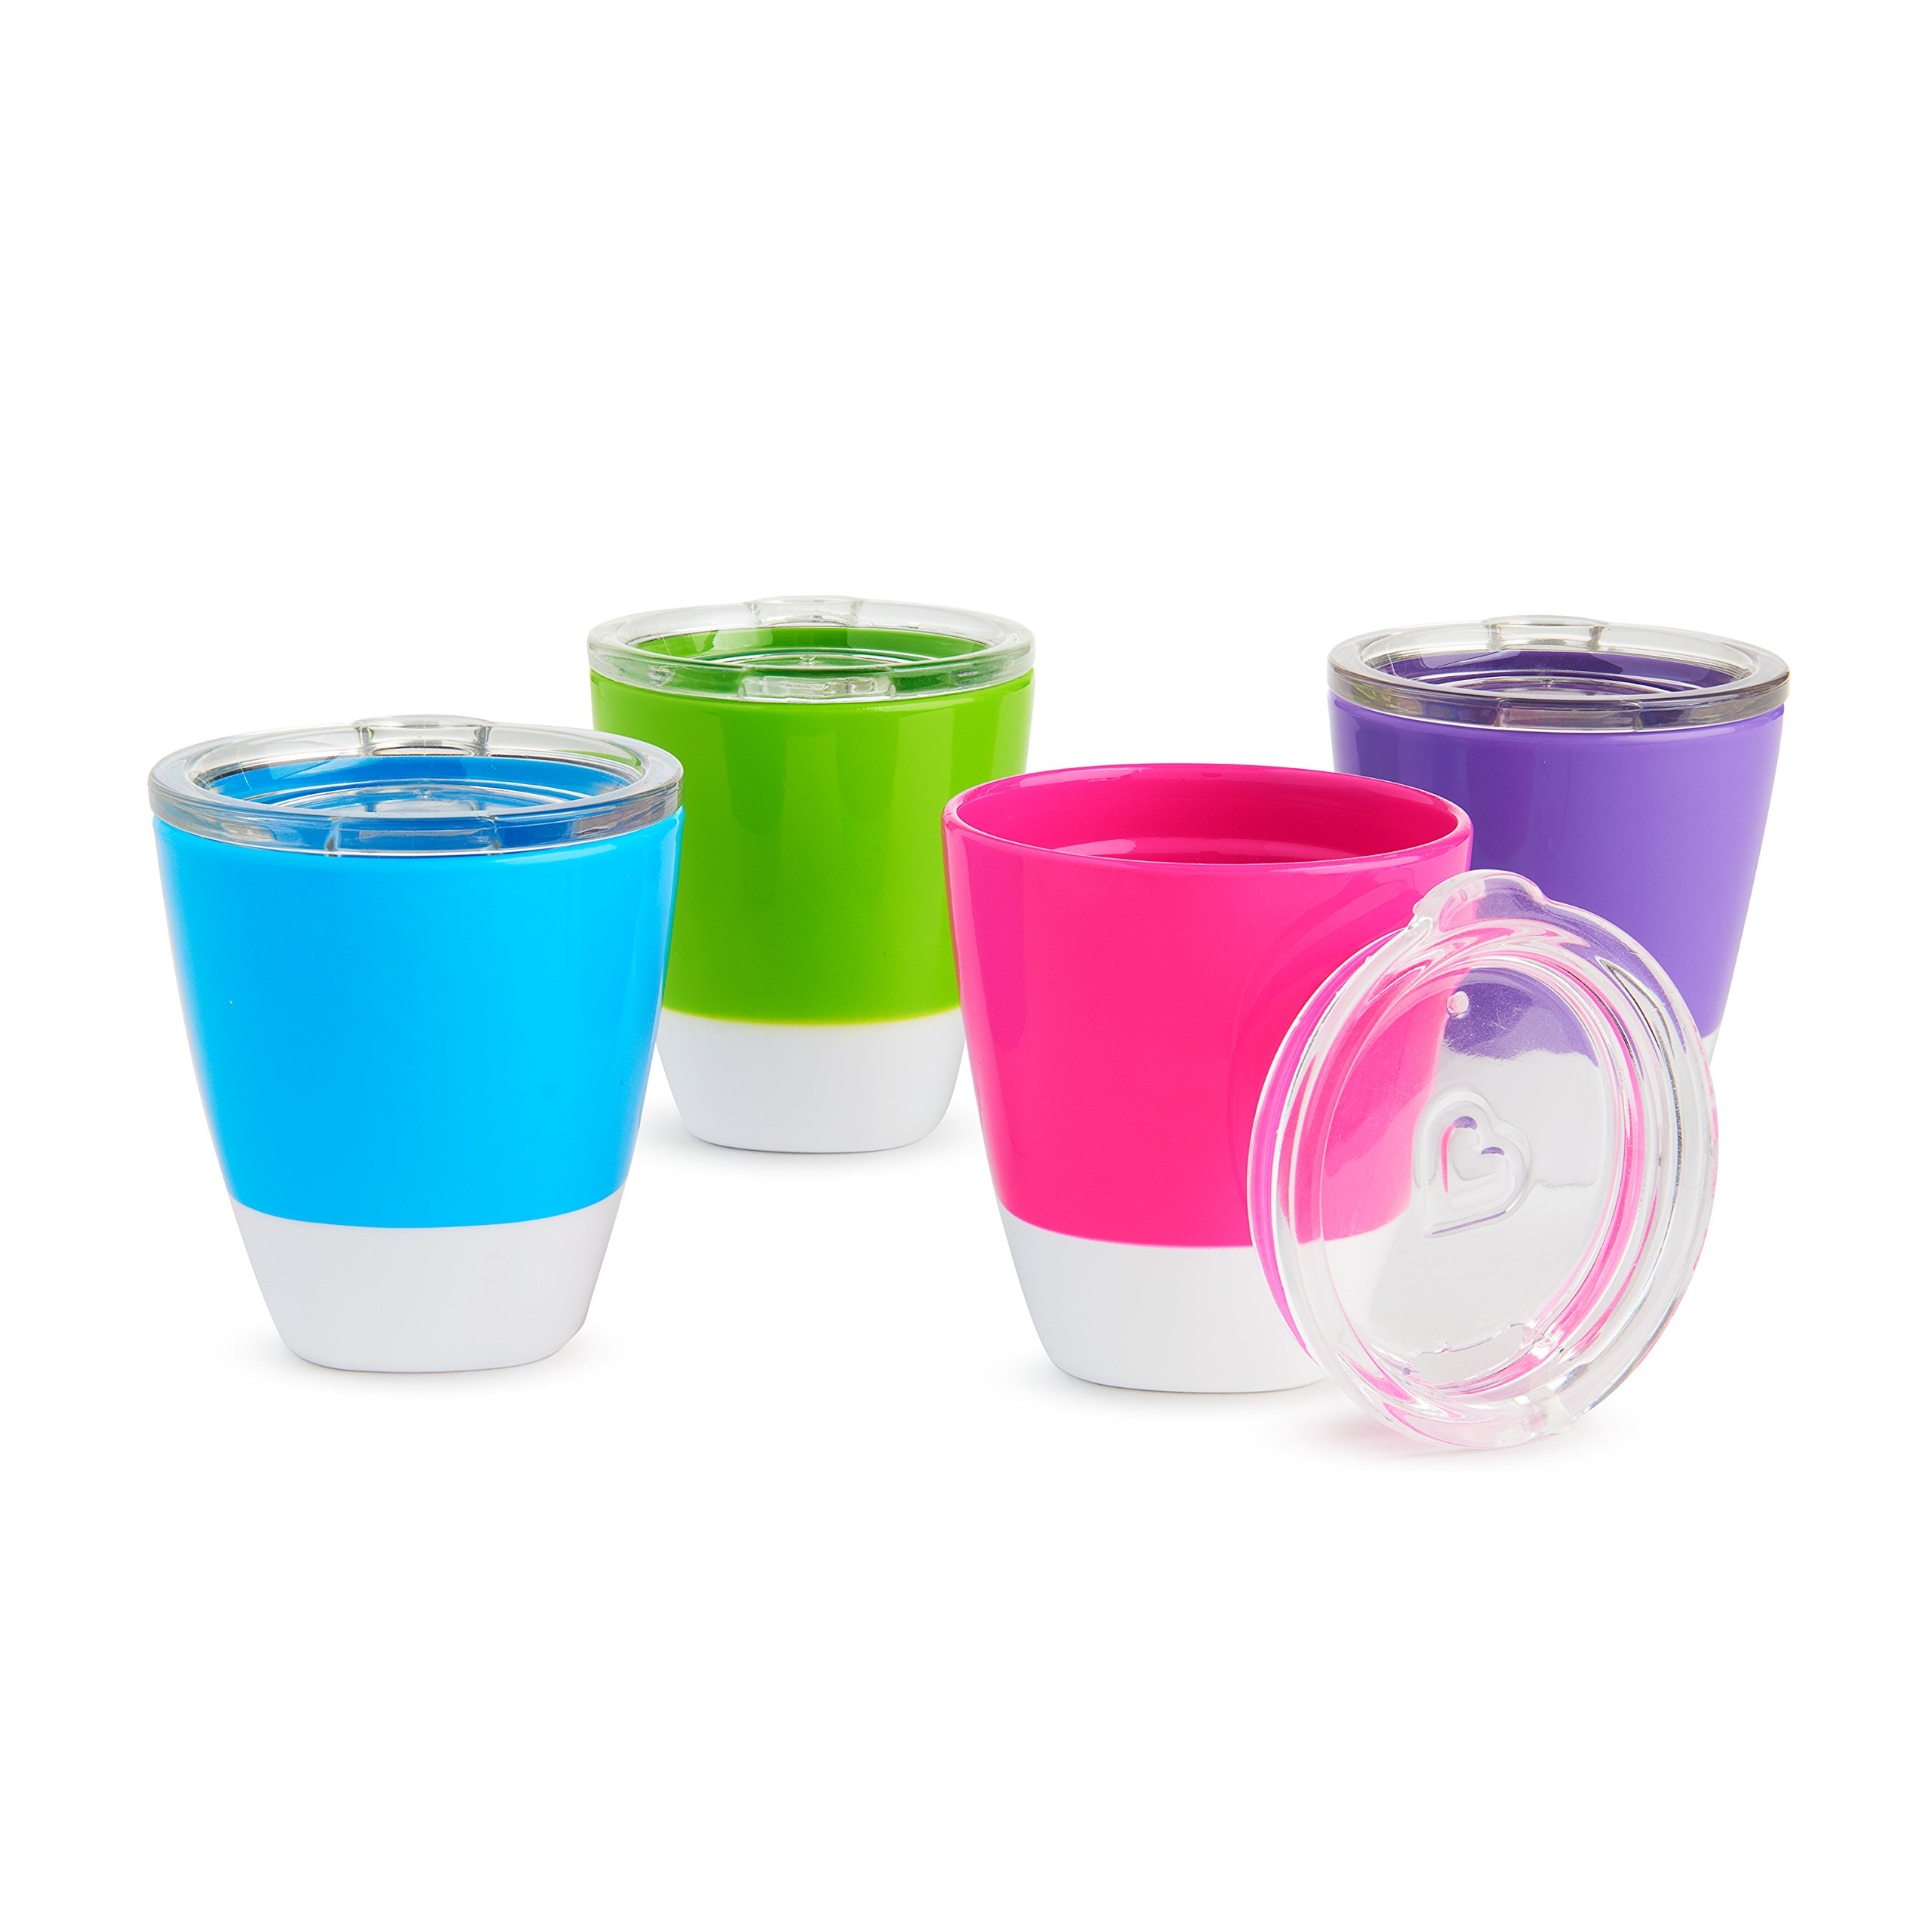 Munchkin Splash Toddler Cups with Training Lids, 7 Ounce, 4 Pack